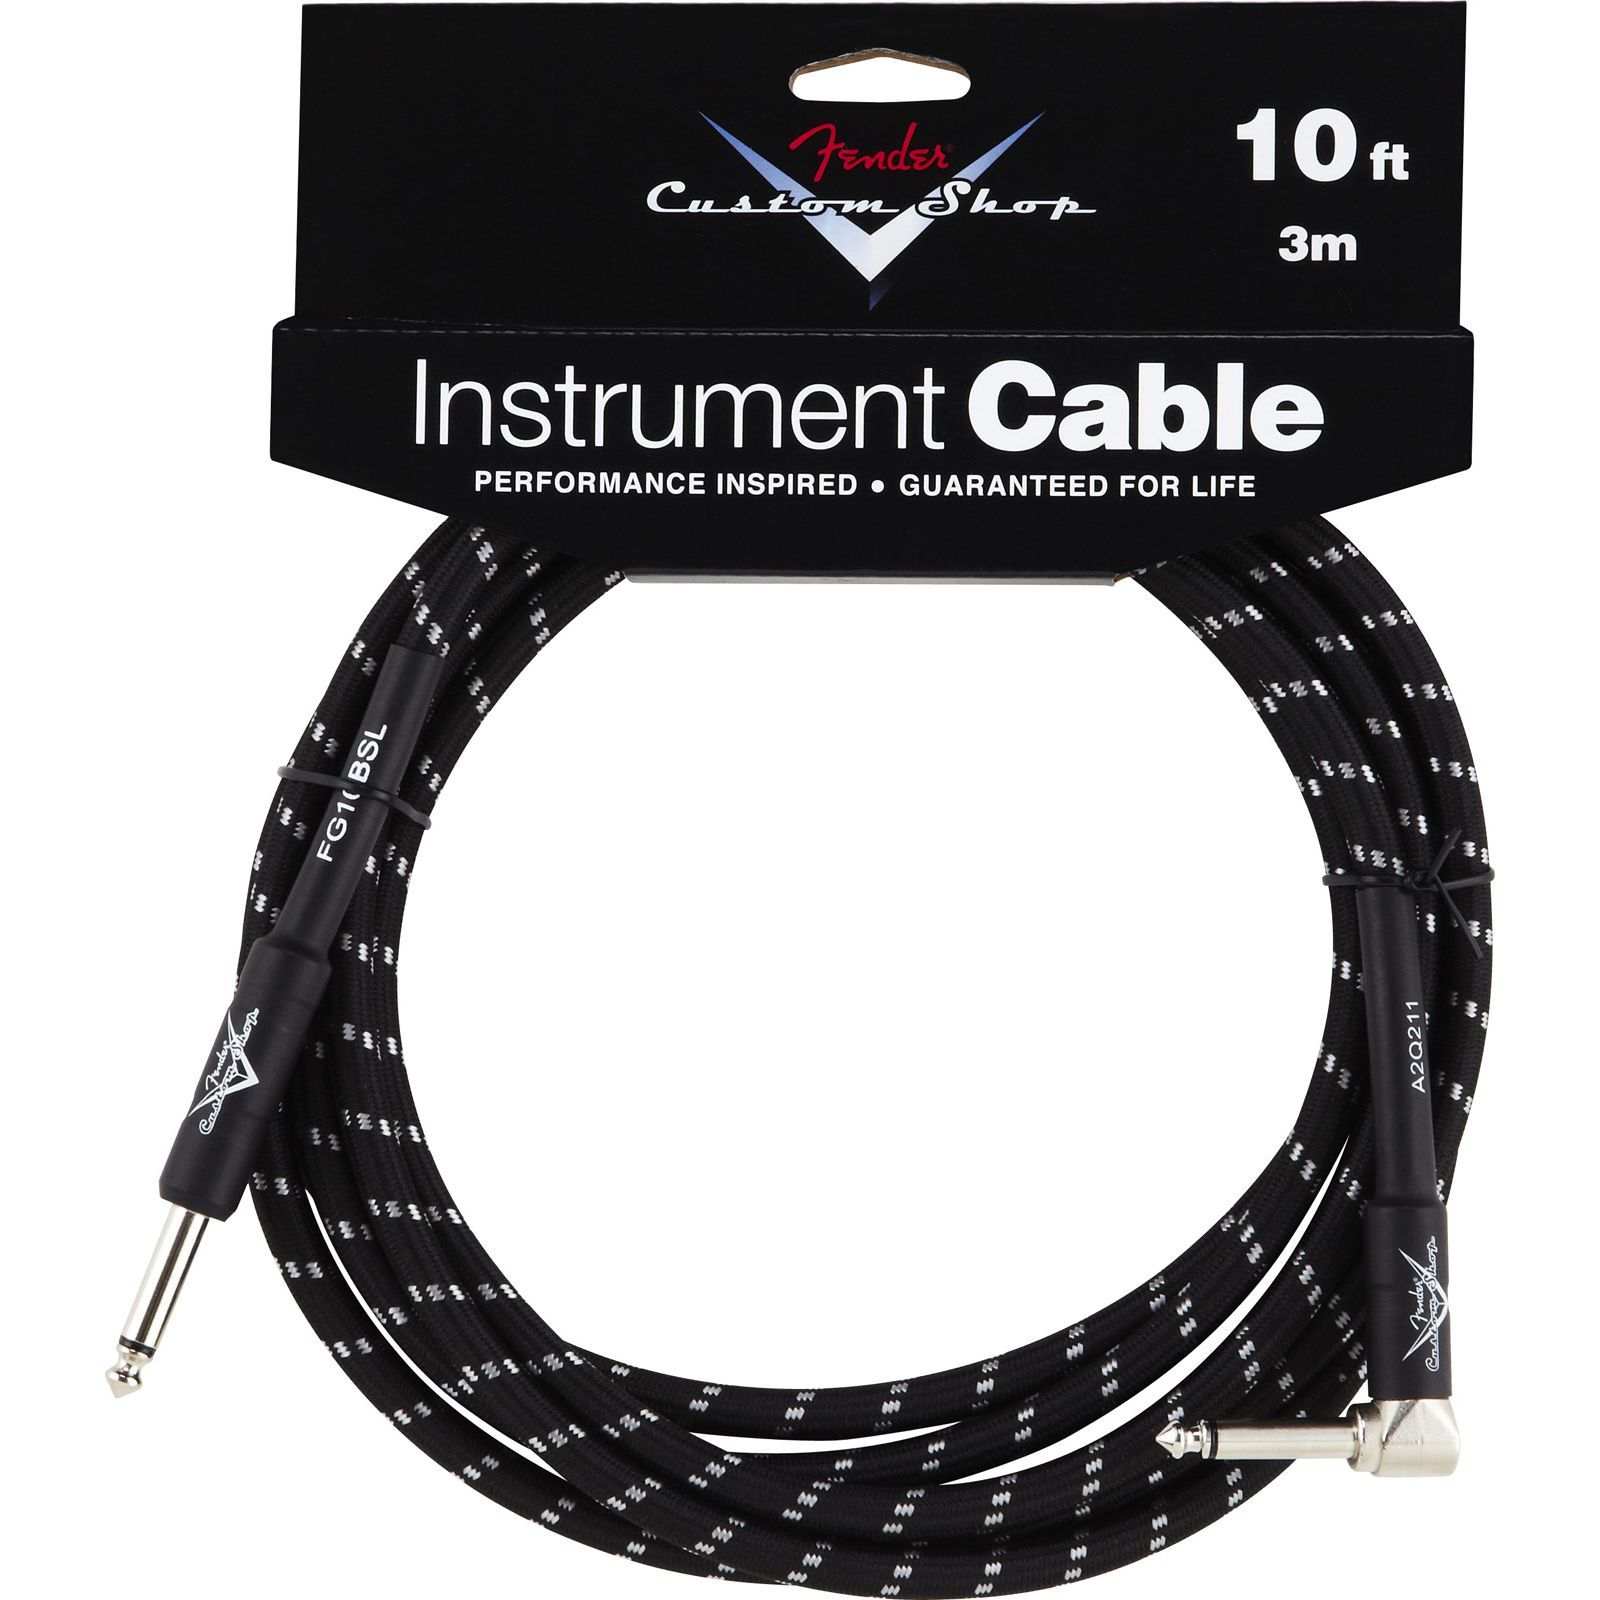 Fender Custom Shop Cable 3m BTW Black Tweed, Kli/WKli Produktbild